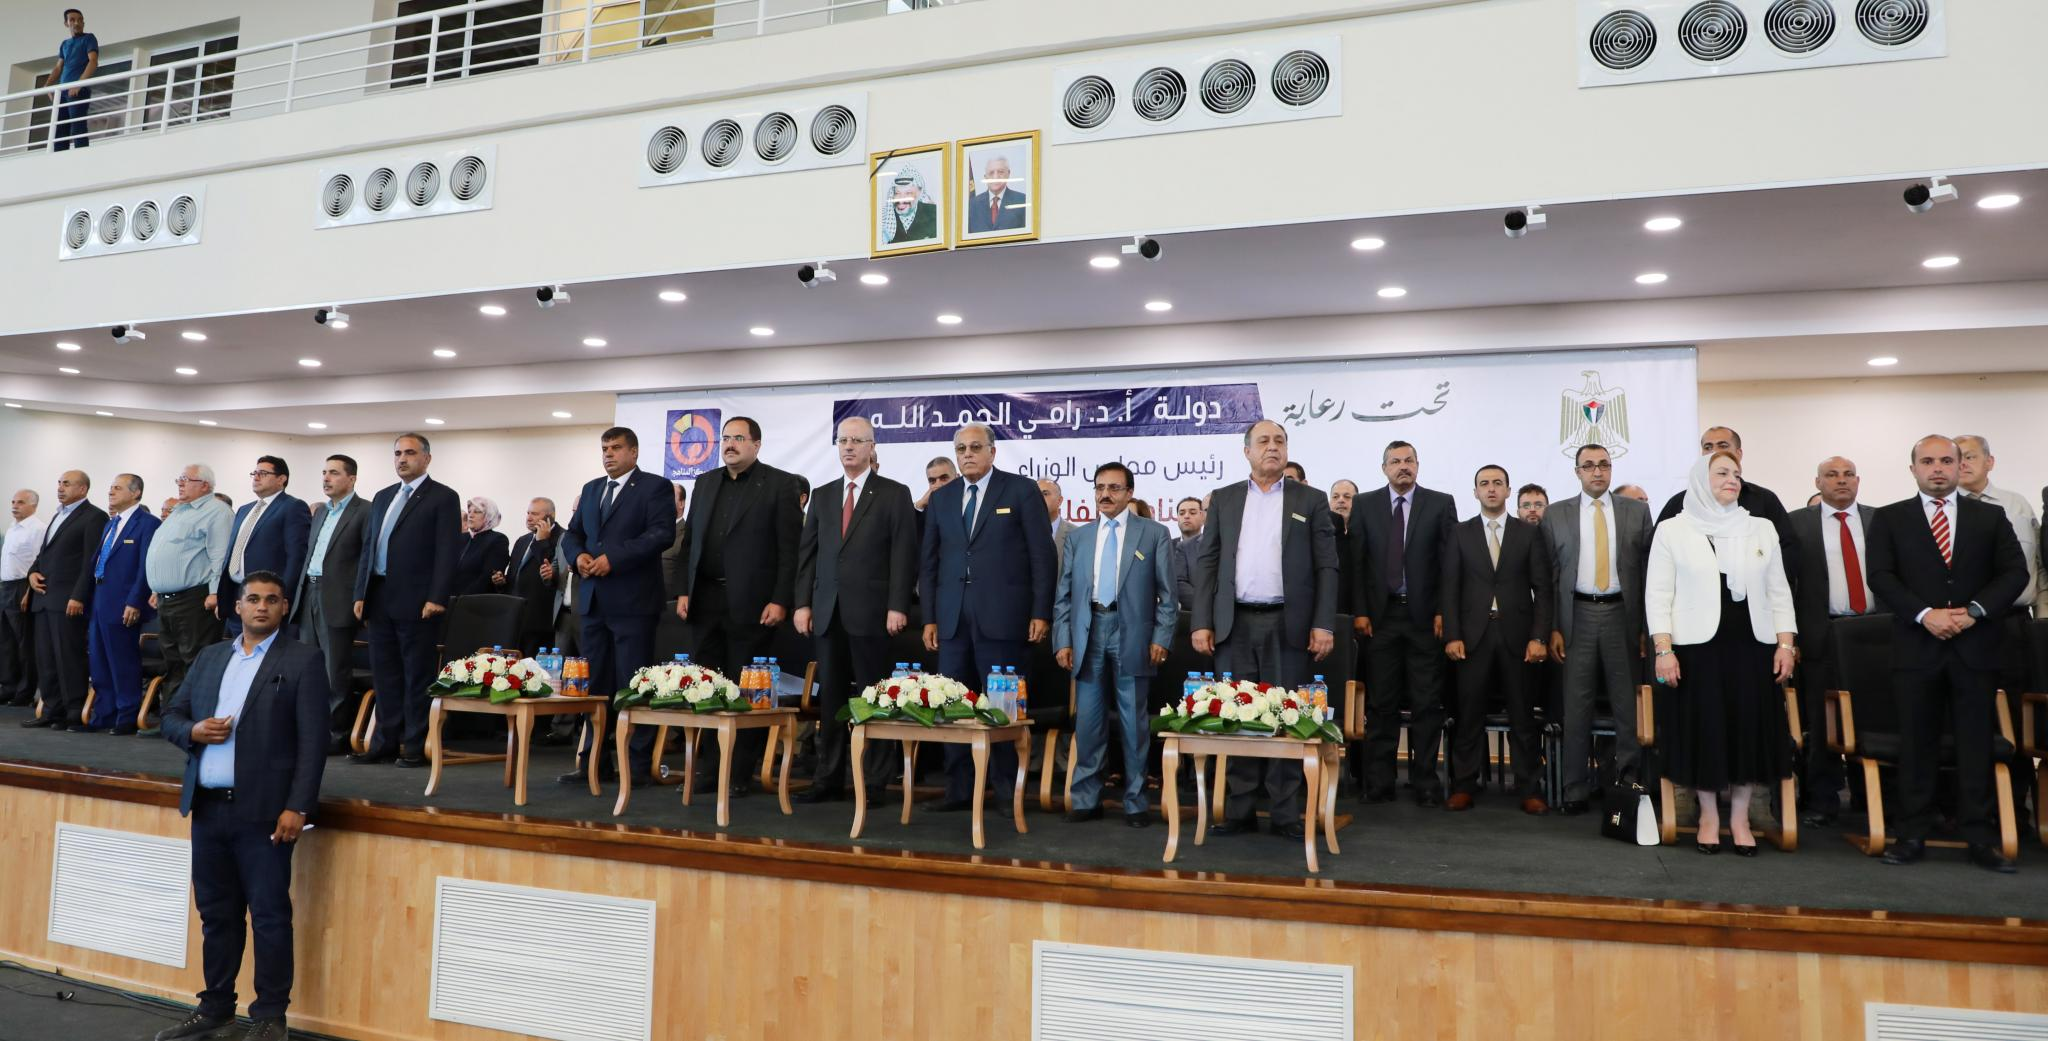 Part of the Ceremony of Palestinian Curriculum completion